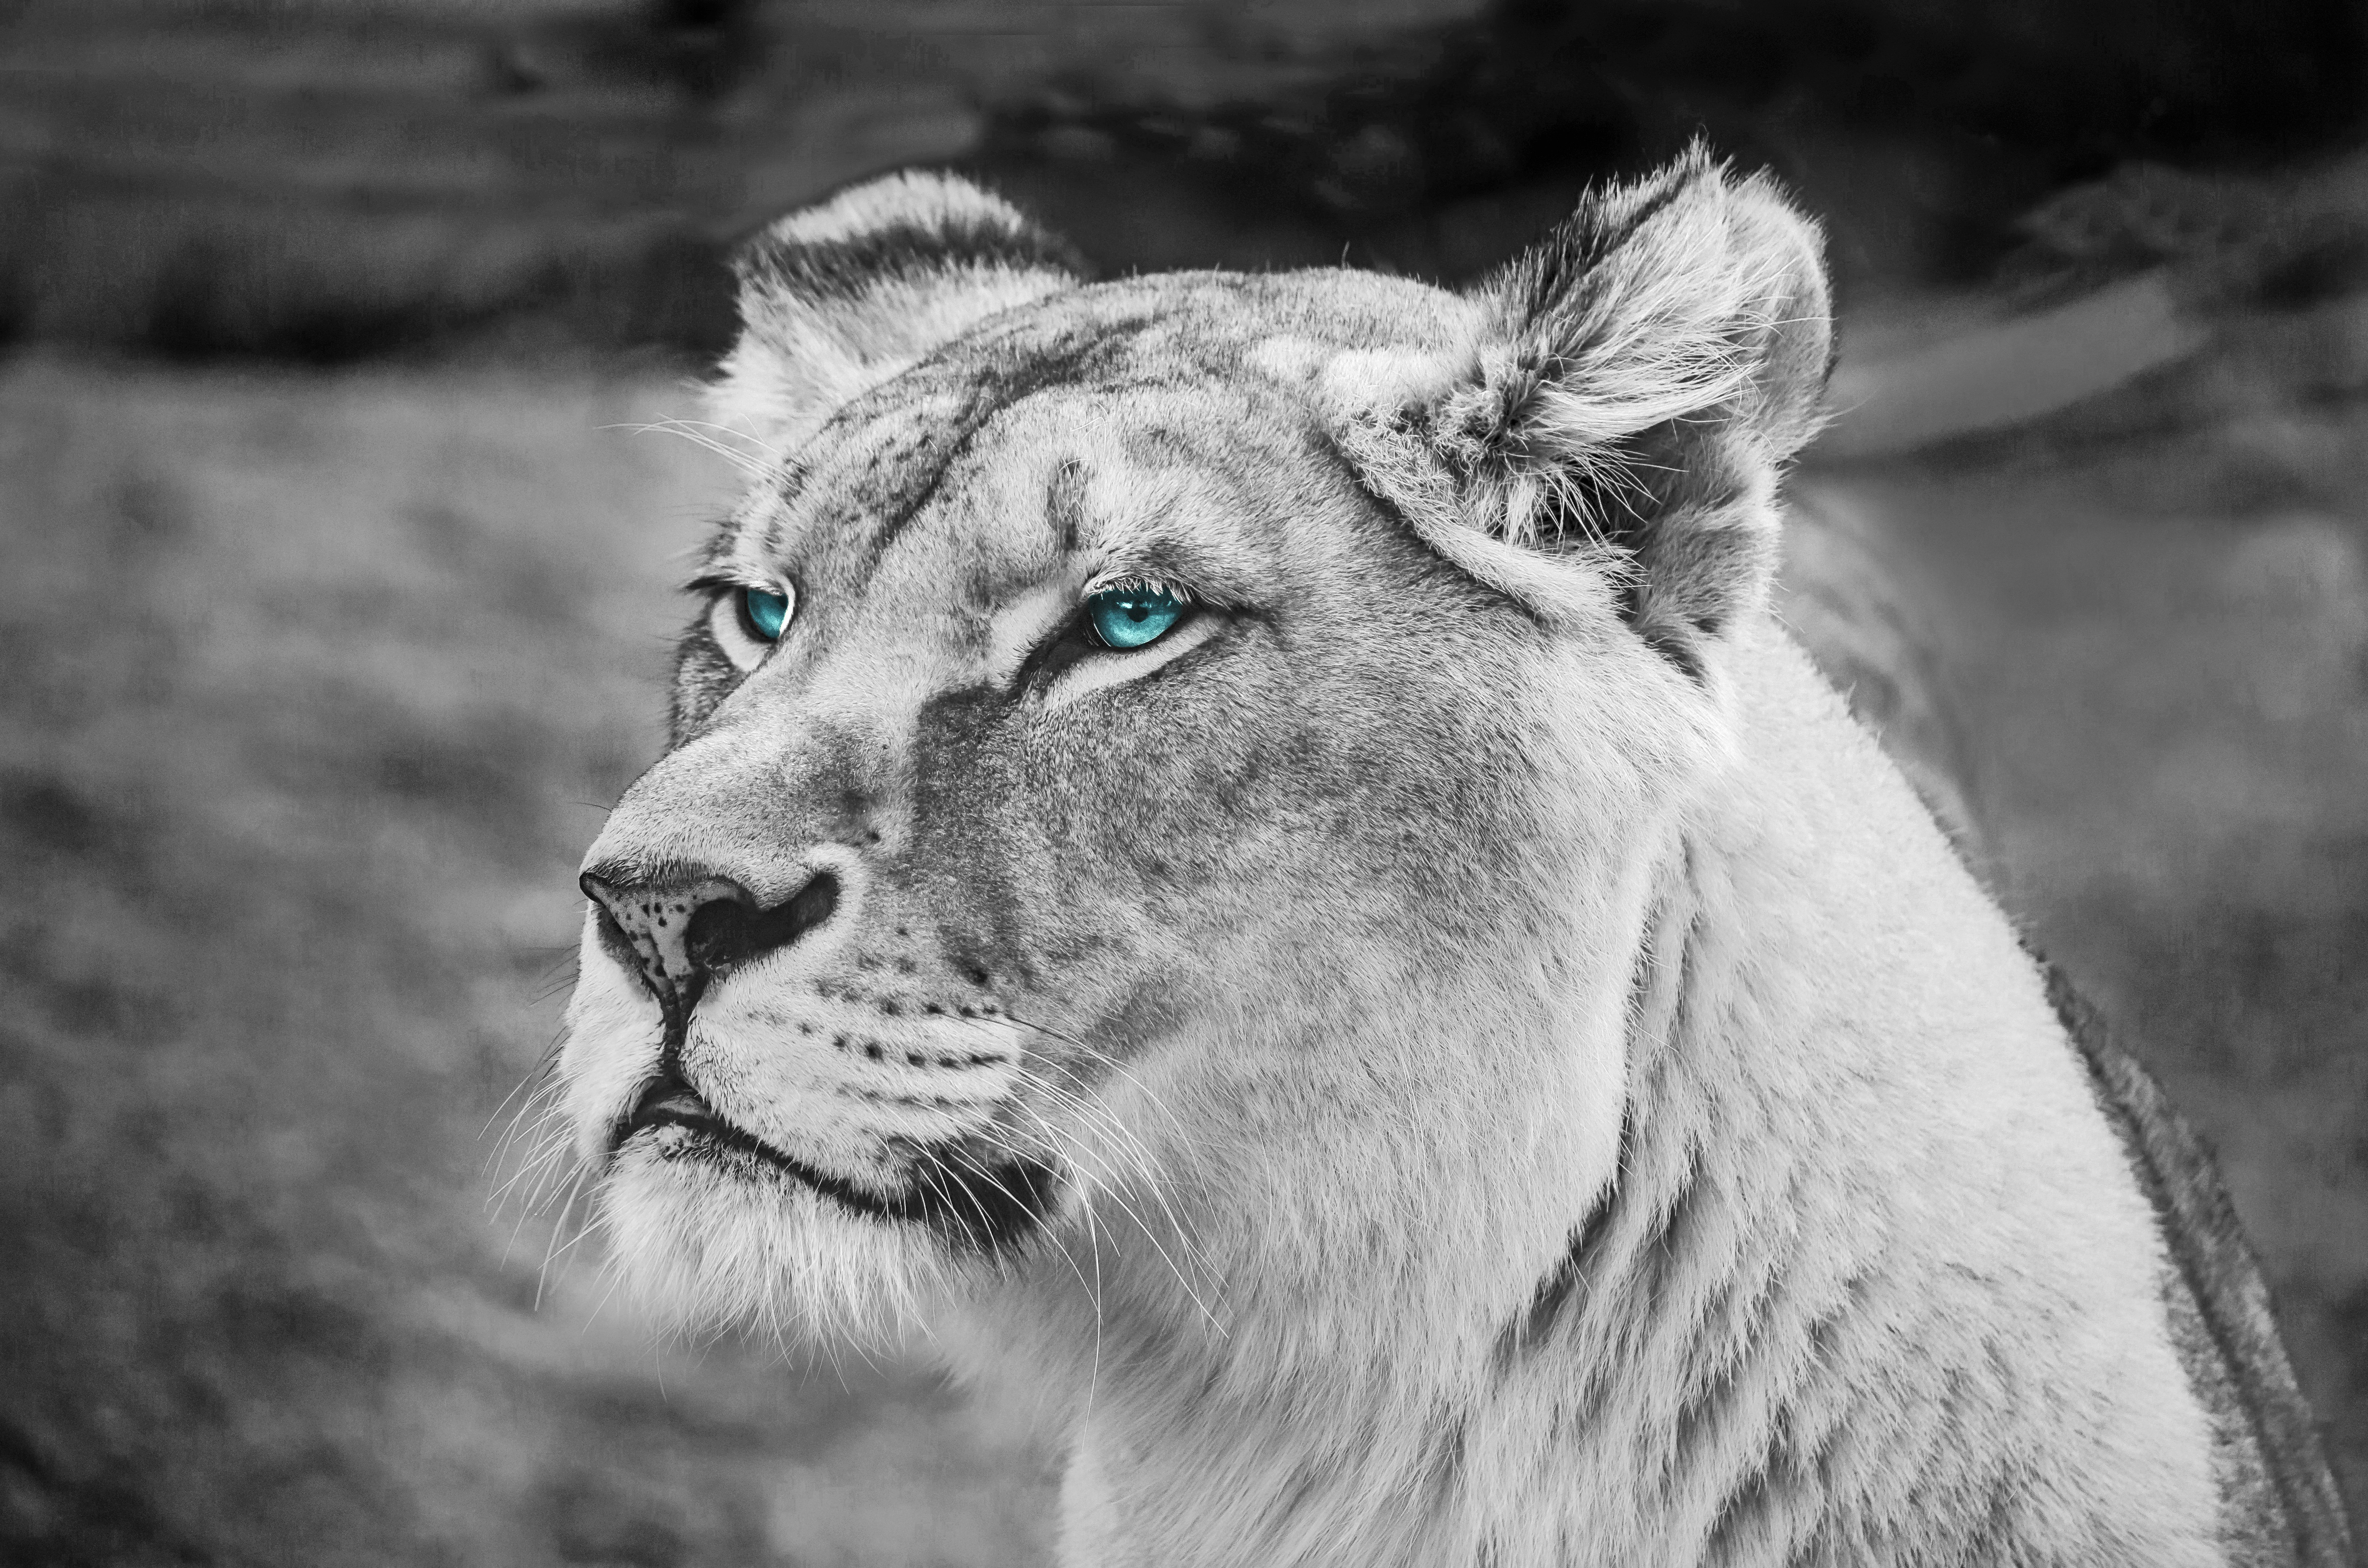 Lion Blue Eyes Monochrome 5k Hd Animals 4k Wallpapers Images Backgrounds Photos And Pictures